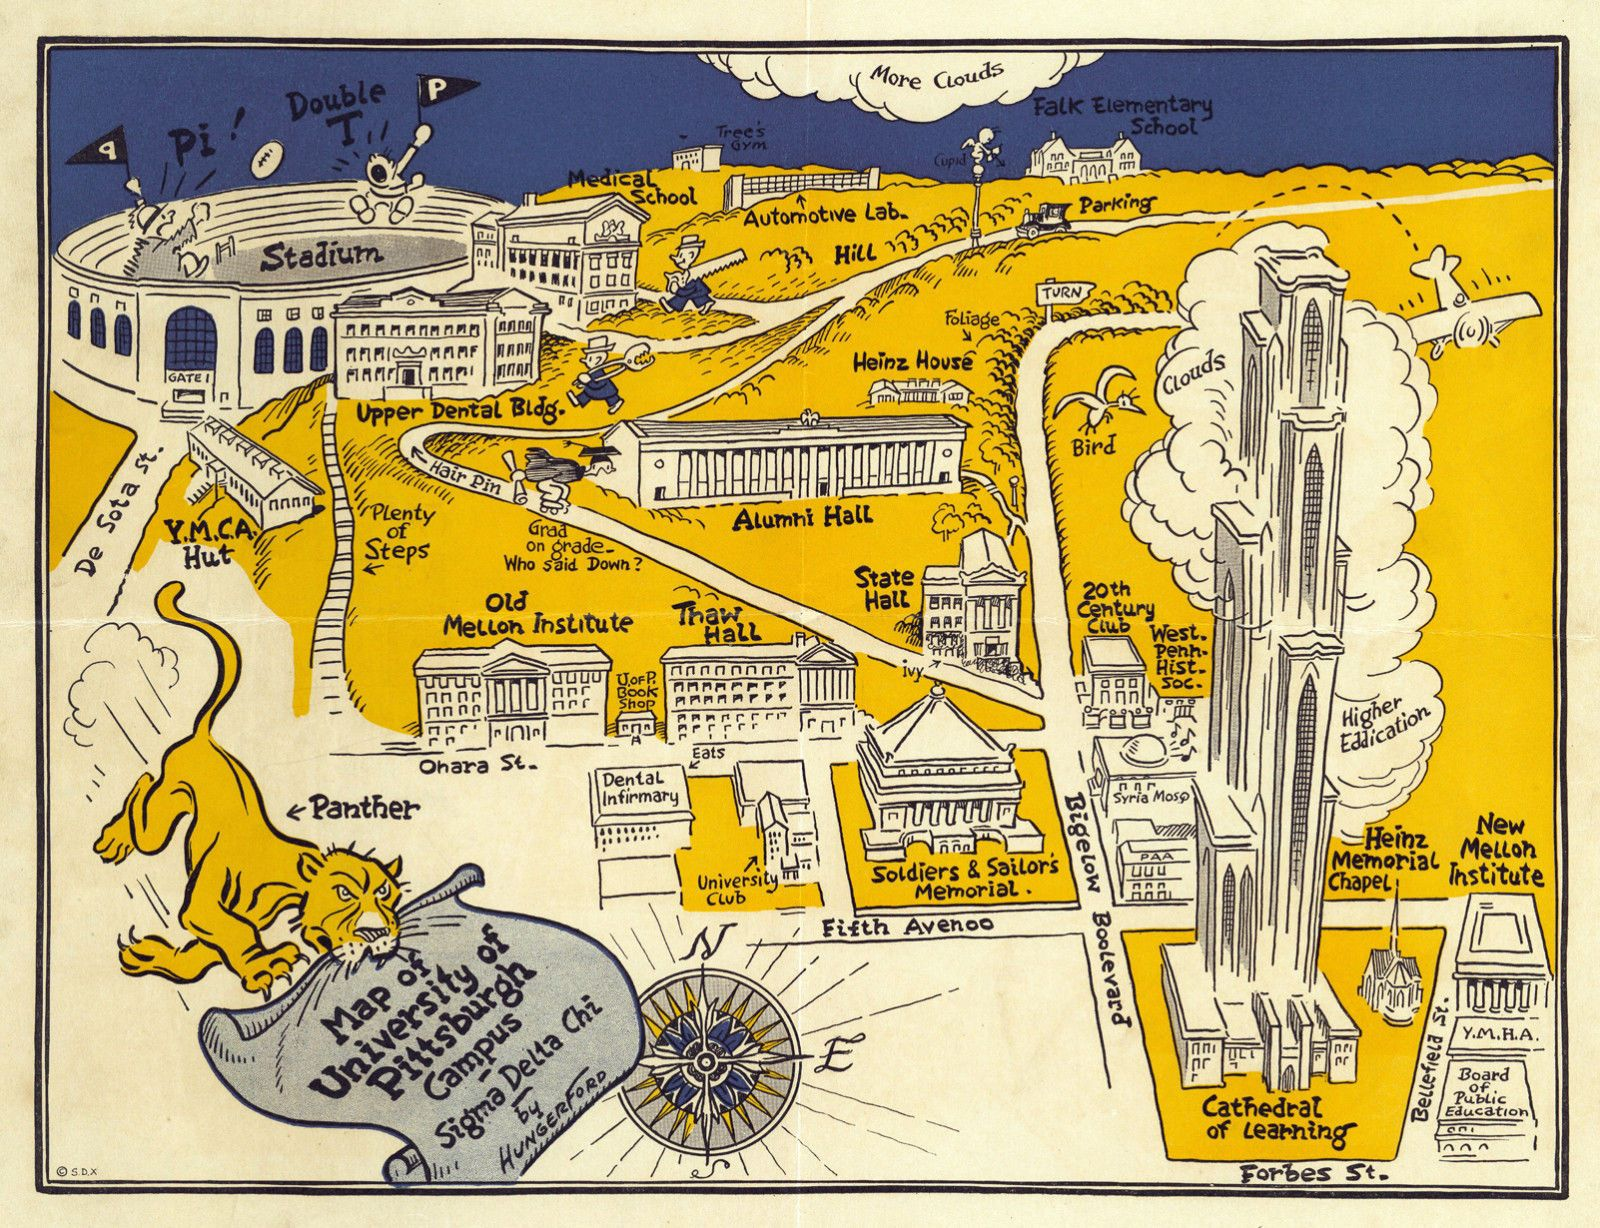 University Of Pittsburgh Map Details about 1935 University of Pittsburgh Campus Map Wall Art